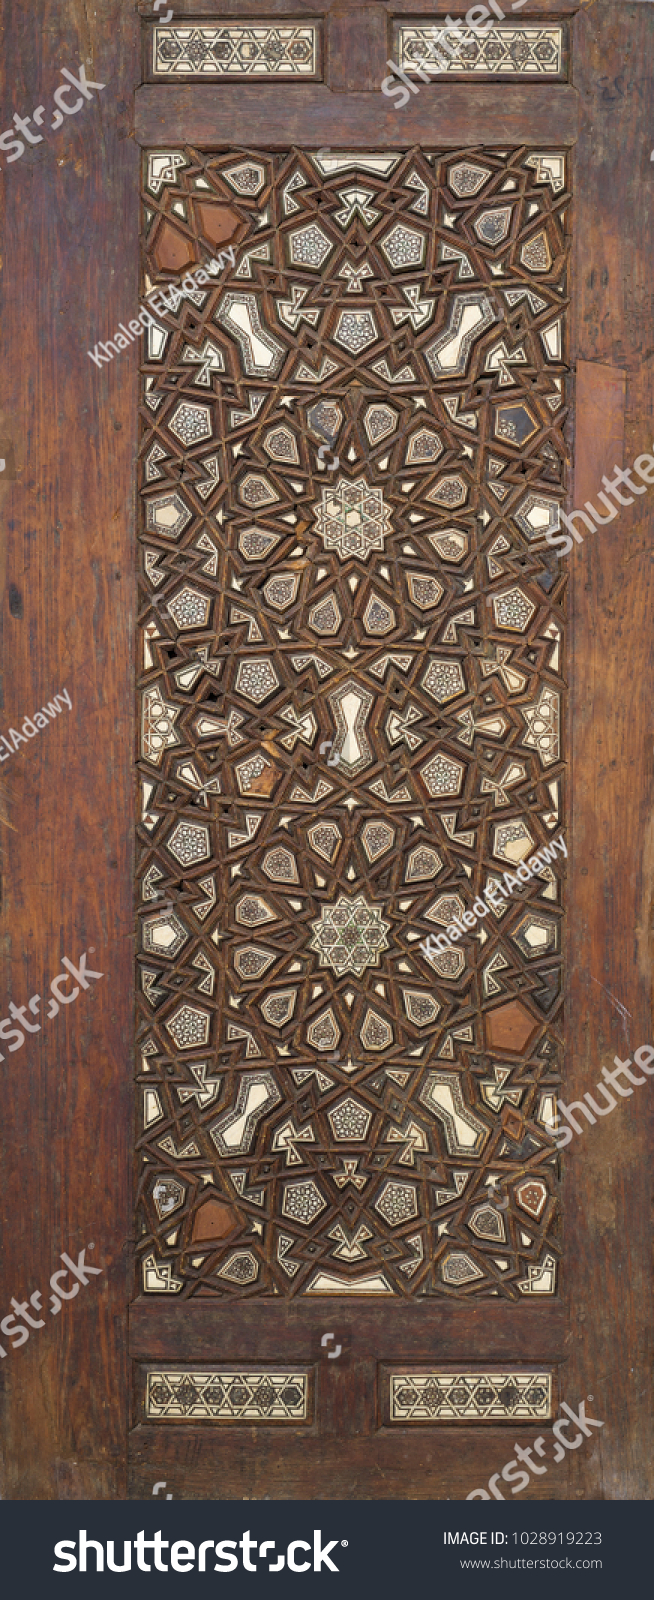 Ottoman style wooden ornate door leaf tongue and groove assembled inlaid with ivory, ebony and bone, Cairo, Egypt #1028919223